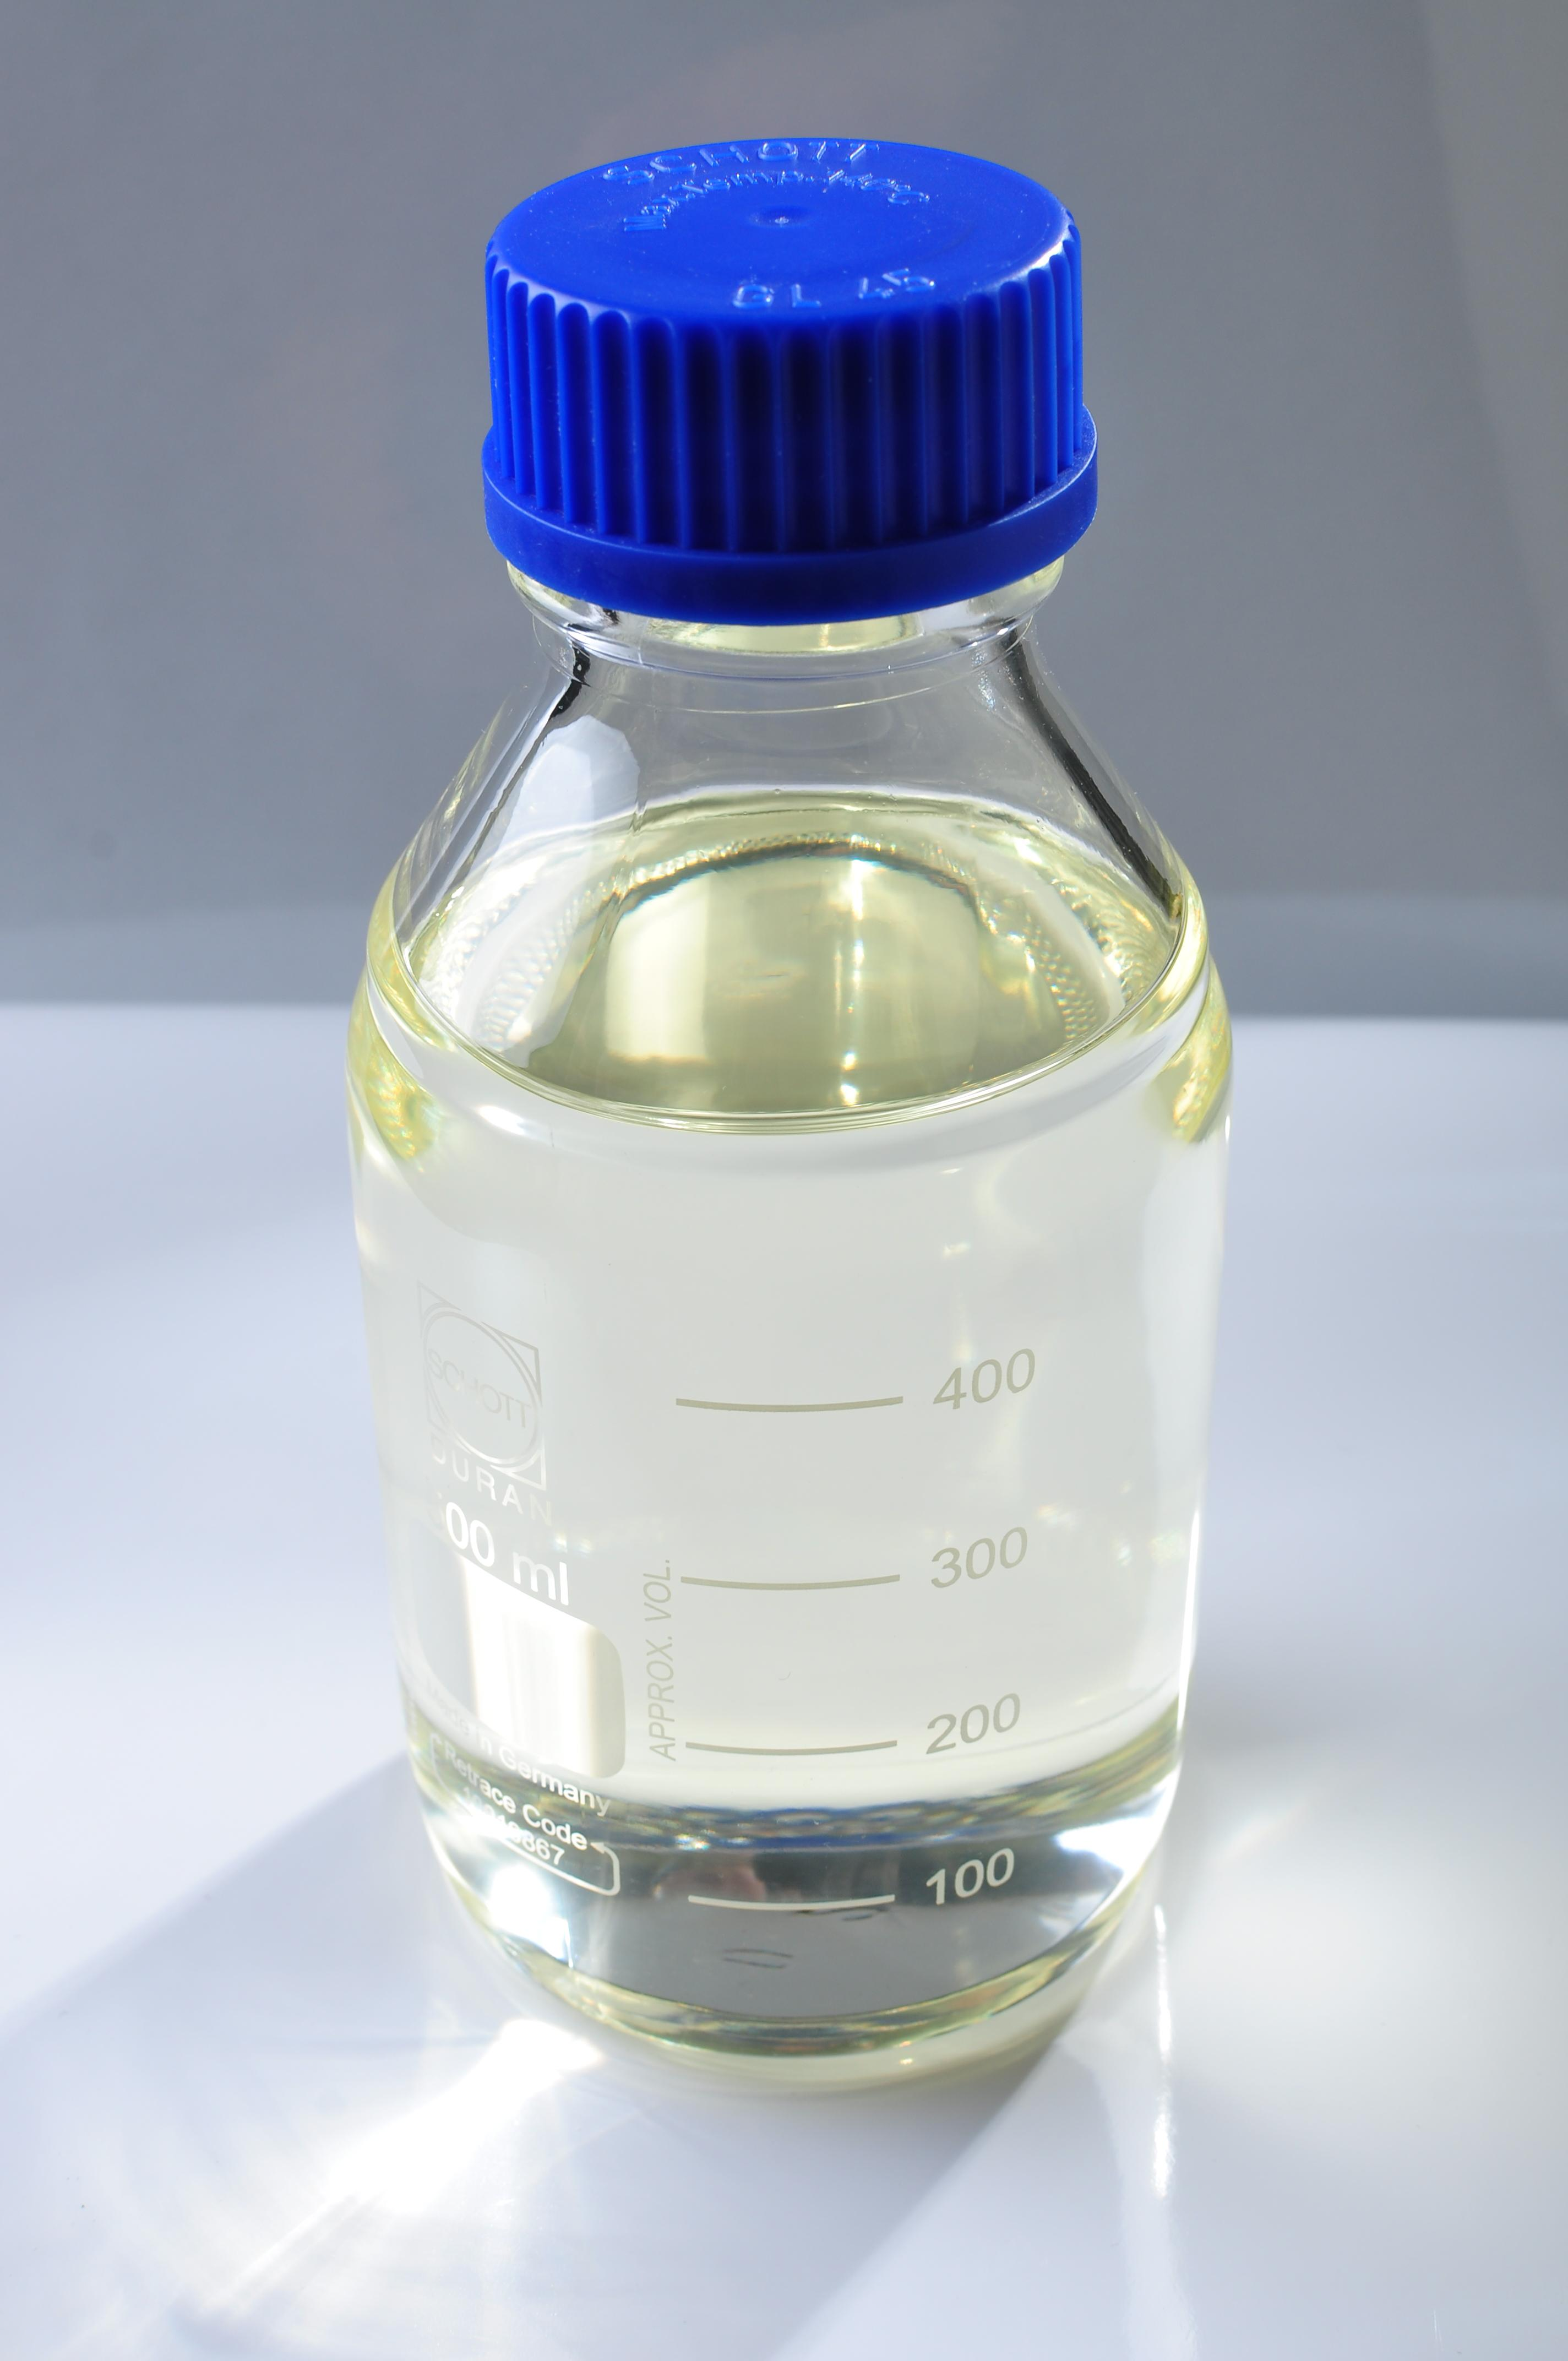 textile auxiliary methyl oleate